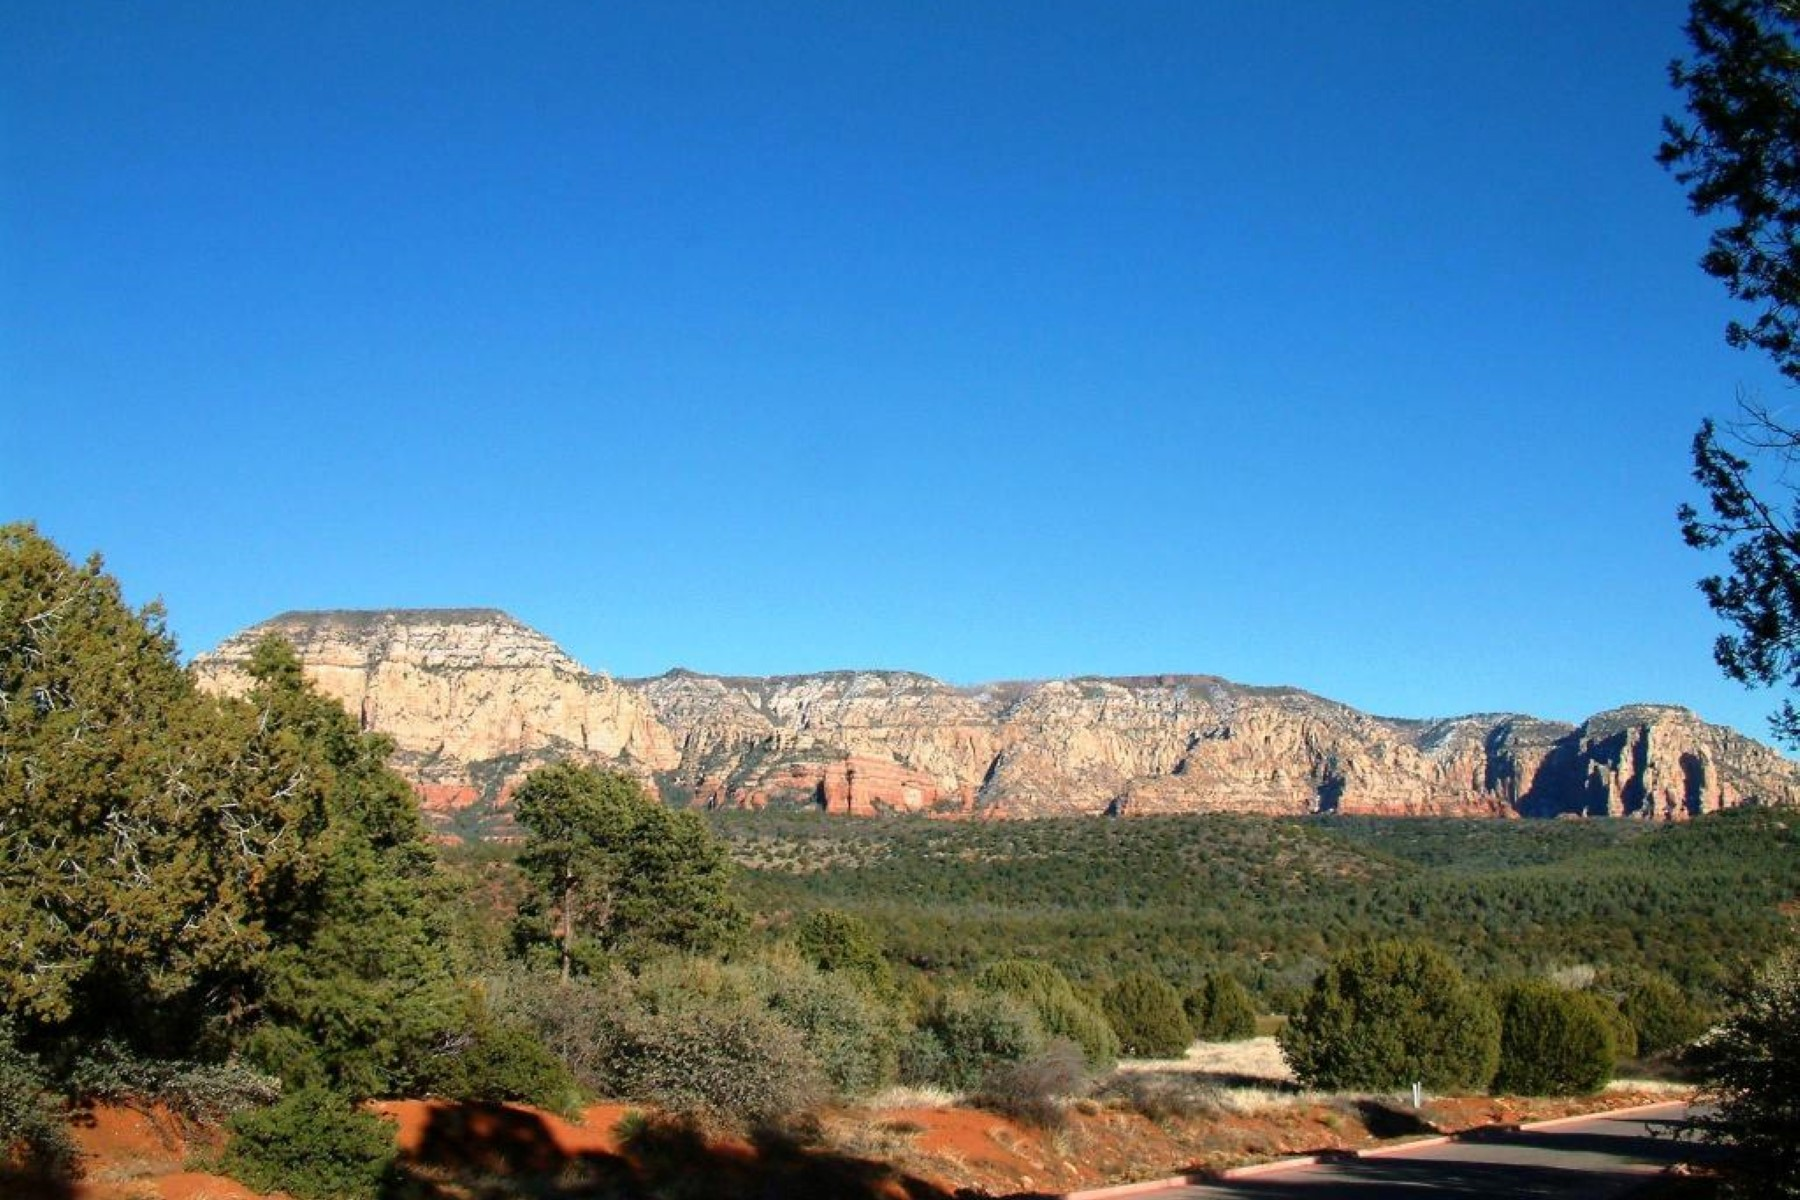 Terreno por un Venta en Private 1.08 acre estate lot has magnificent panoramic red rock views 30 Canyon Vista Rd Sedona, Arizona, 86336 Estados Unidos